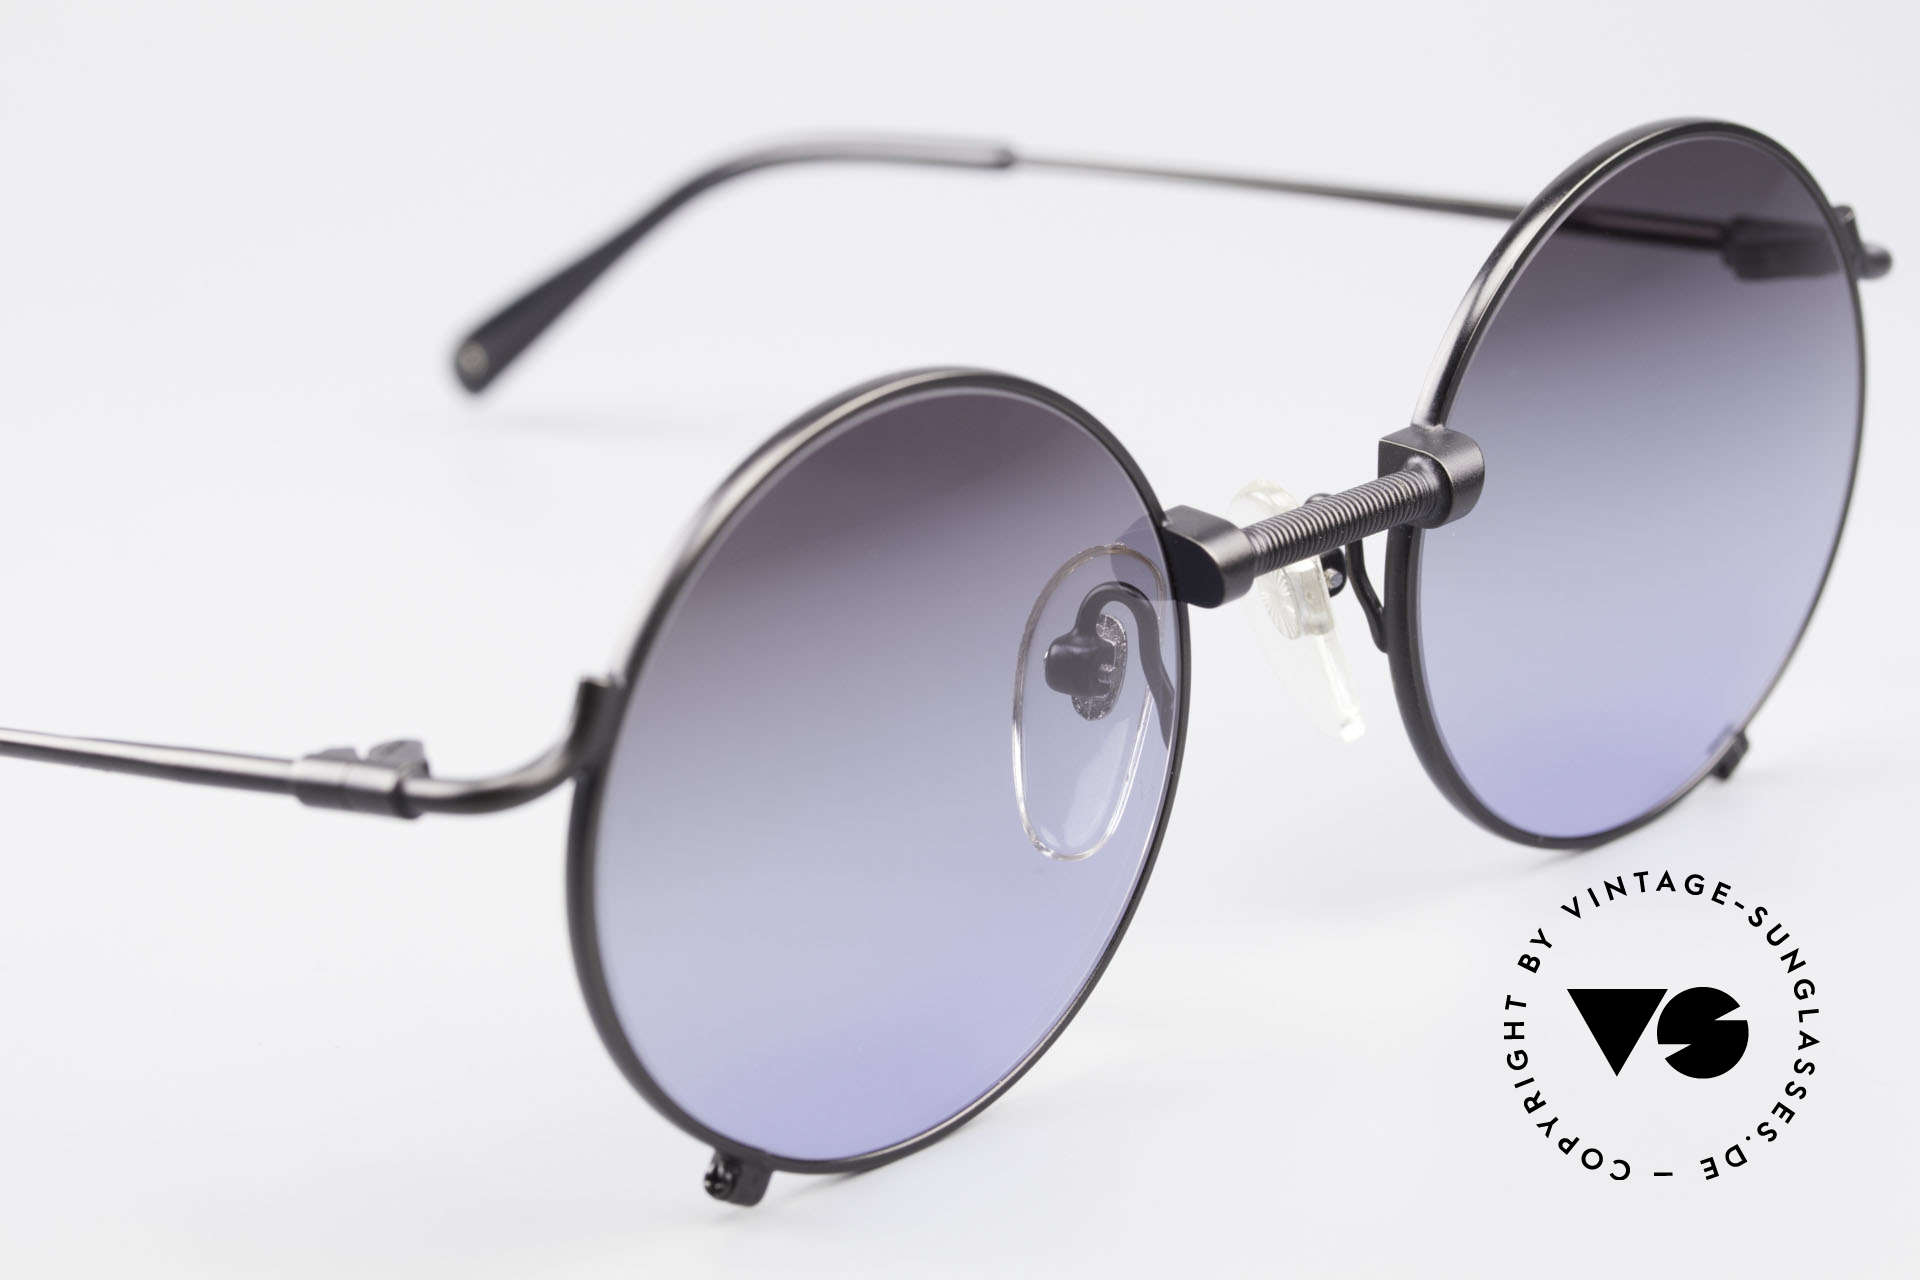 Jean Paul Gaultier 55-7162 Round Vintage Sunglasses, NO retro fashion, but a rare authentic original, Made for Men and Women